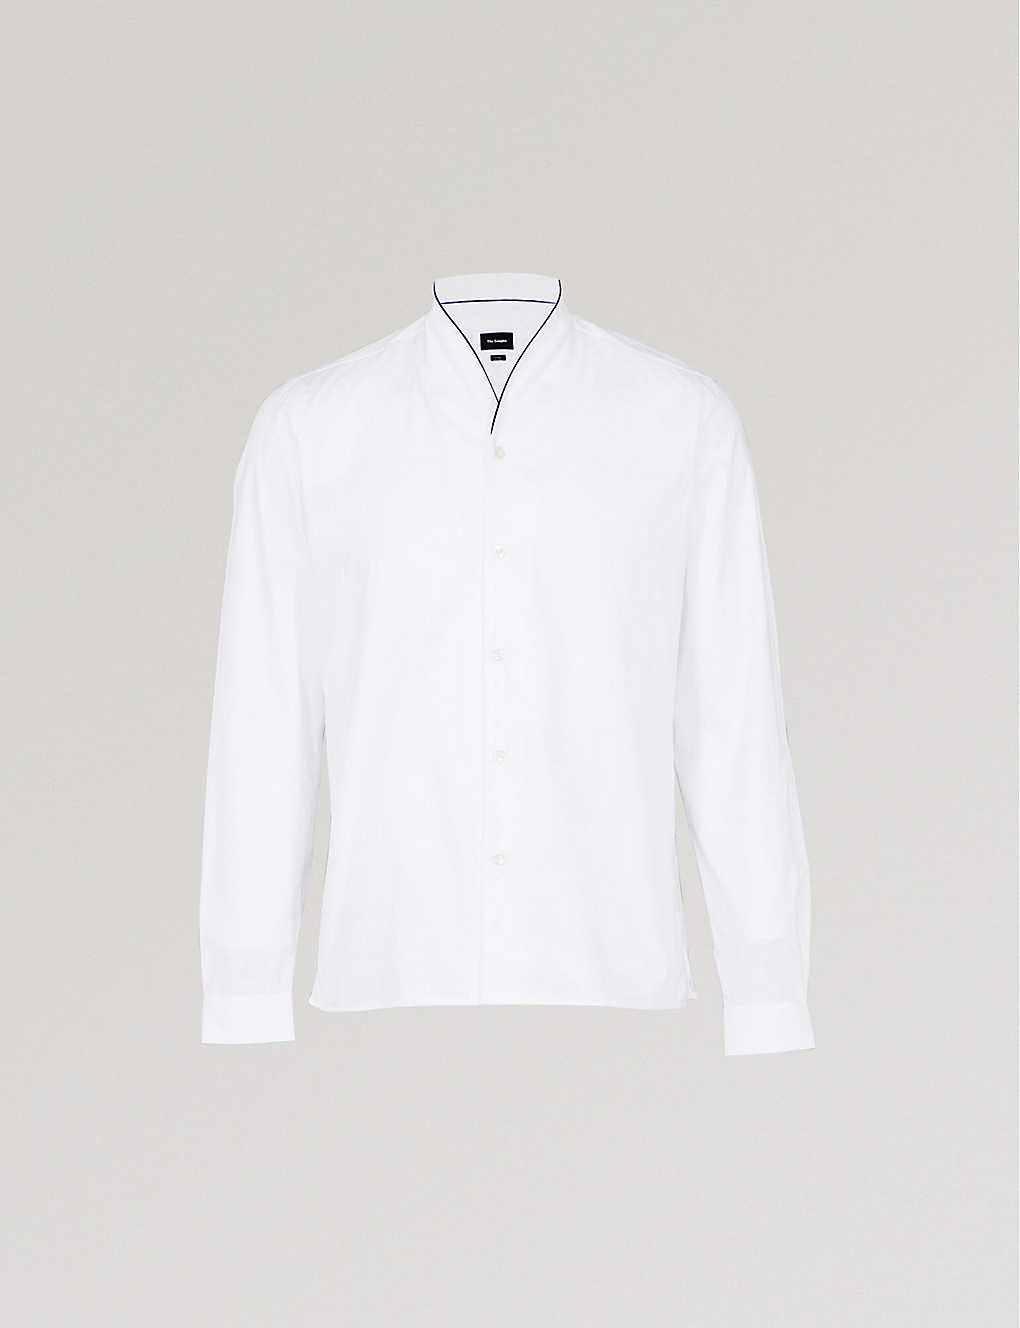 cc8325e7be THE KOOPLES - Shawl-collar fitted cotton-piqué shirt | Selfridges.com